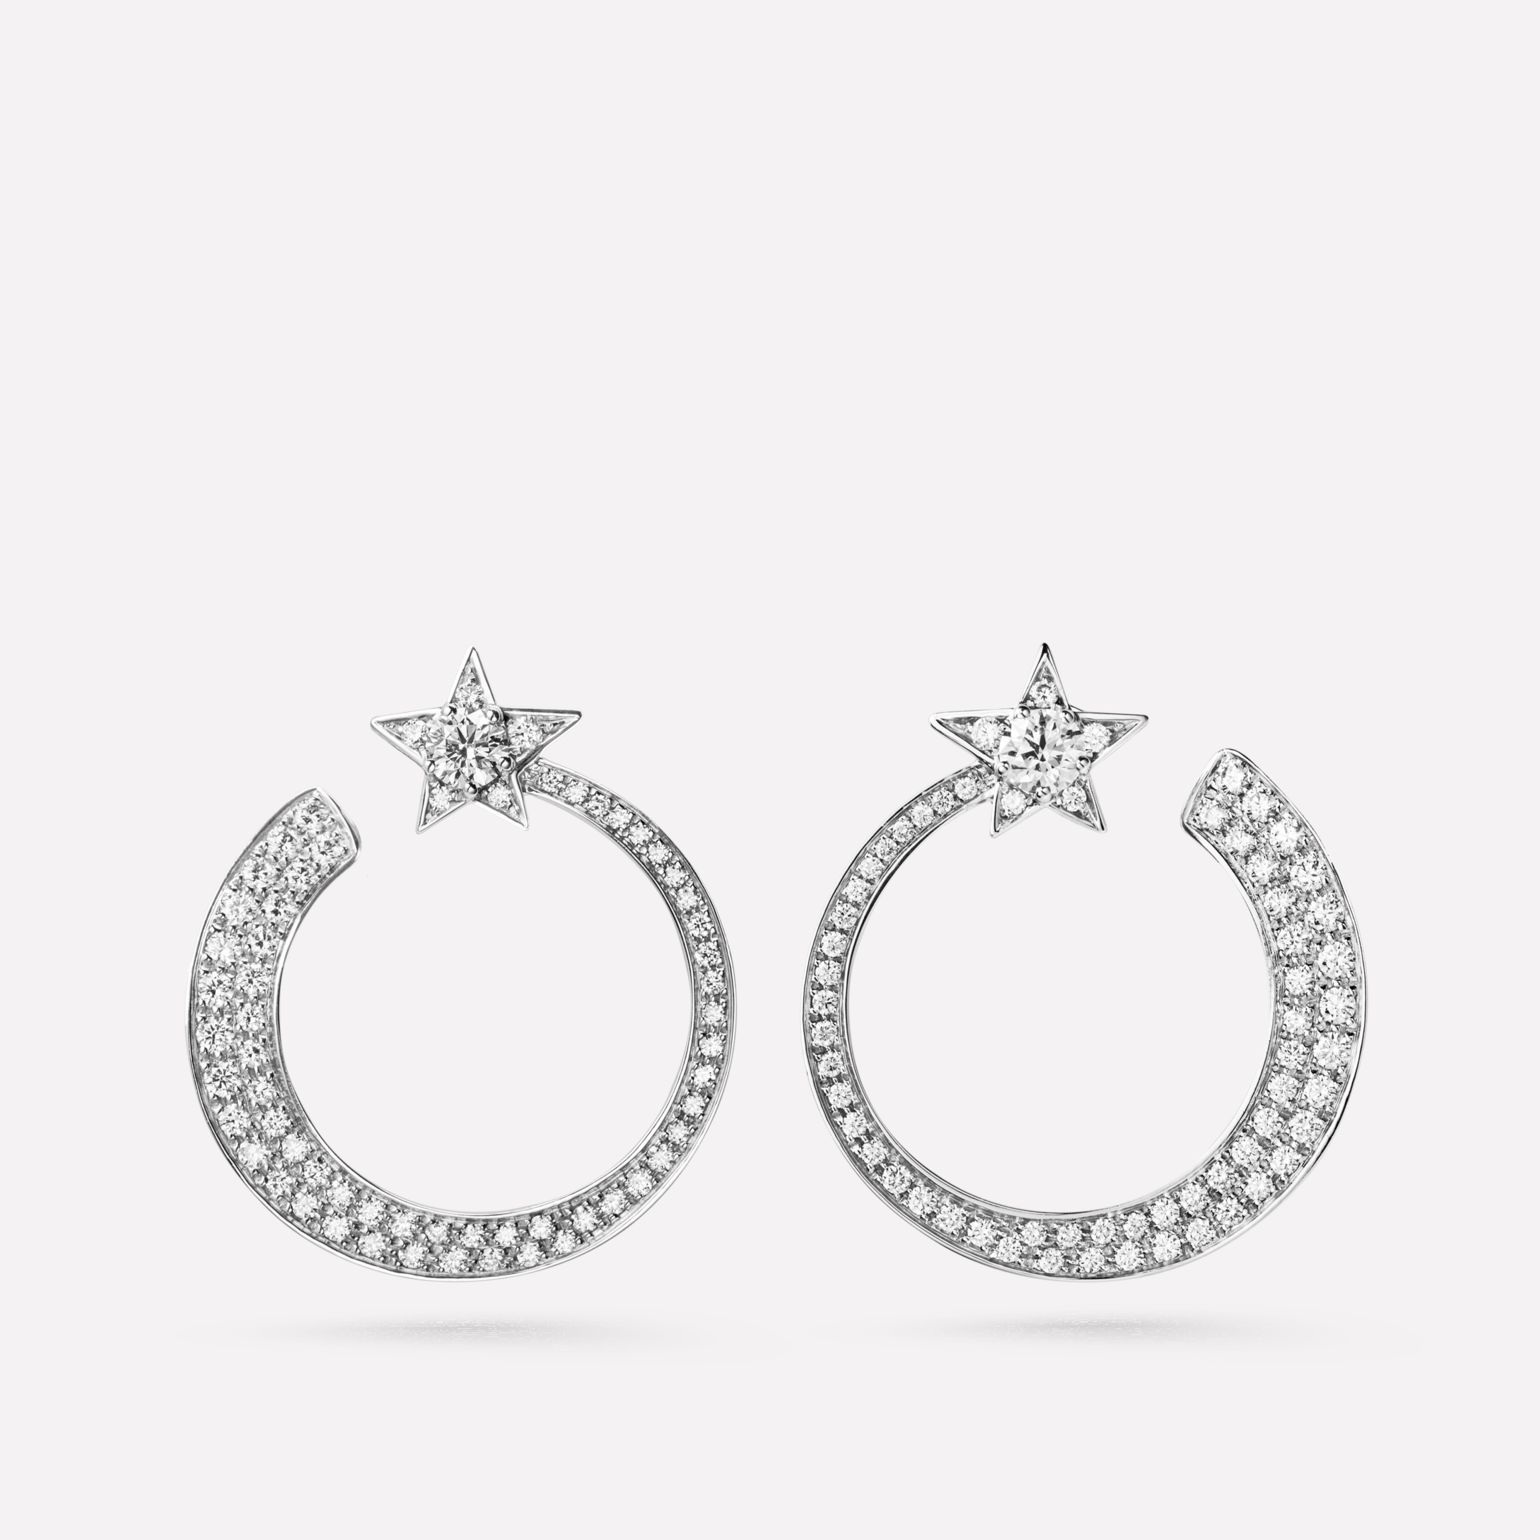 Comète earrings Shooting star hoop earrings, in 18K white gold and diamonds